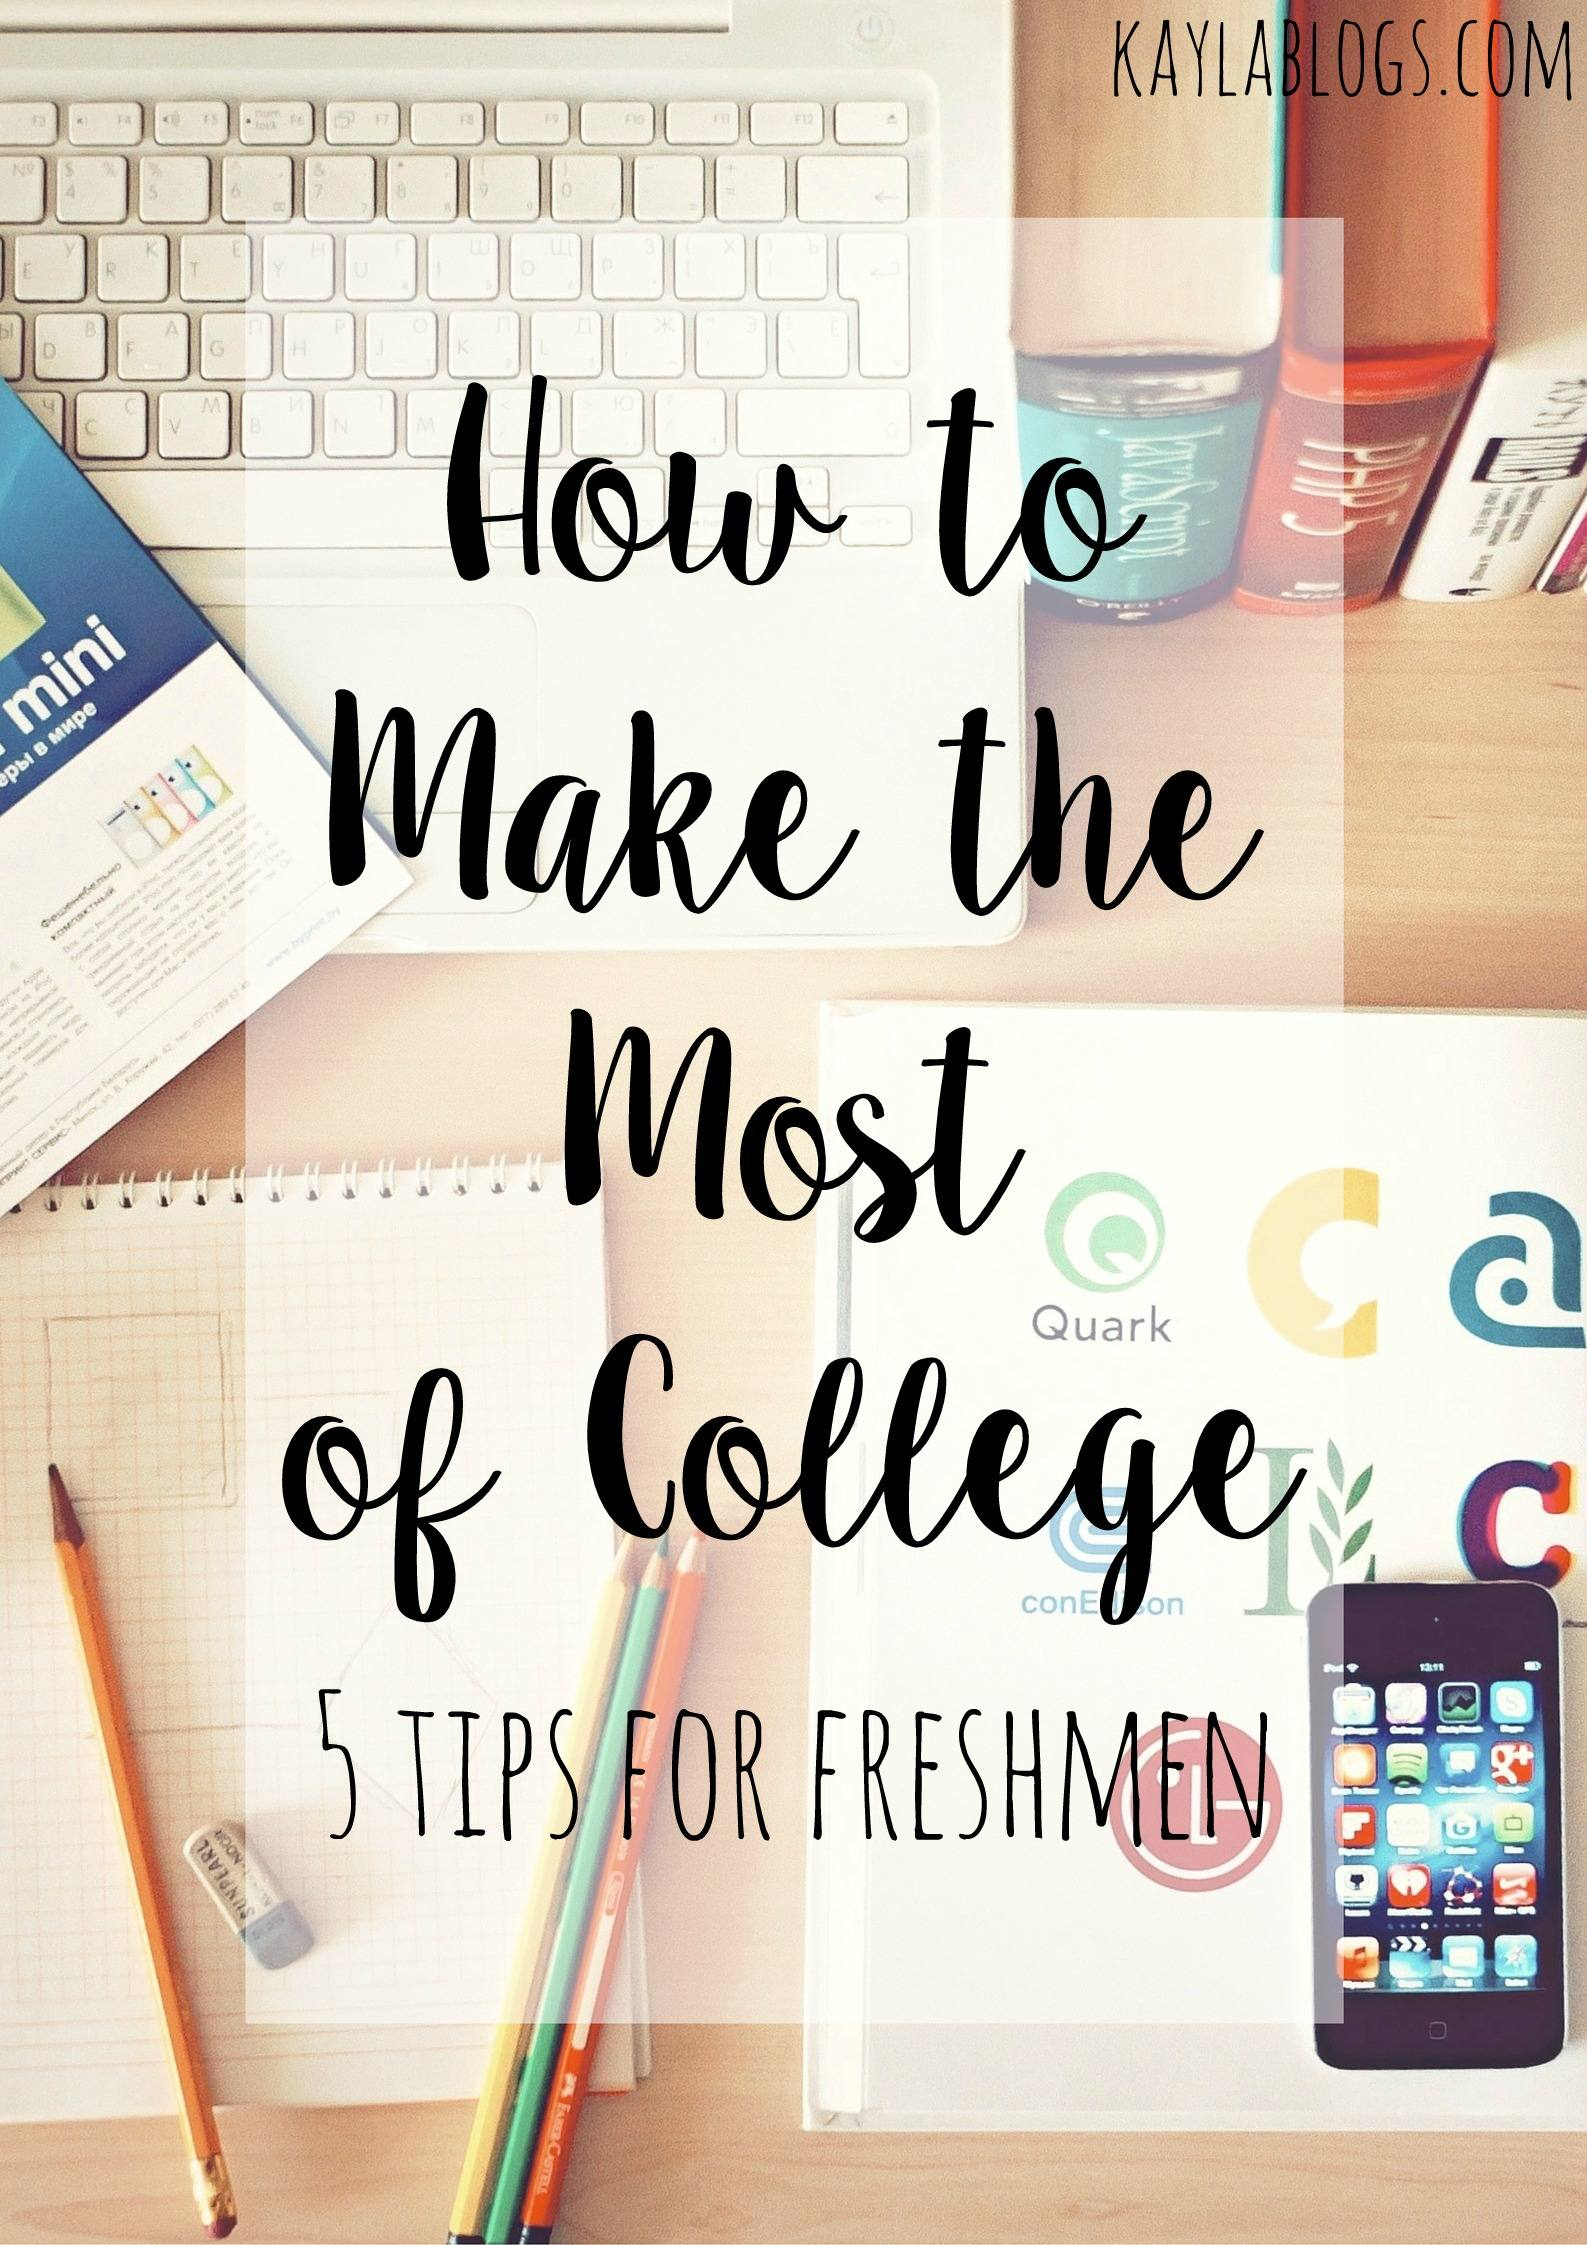 How to Make the Most of College | Kayla Blogs